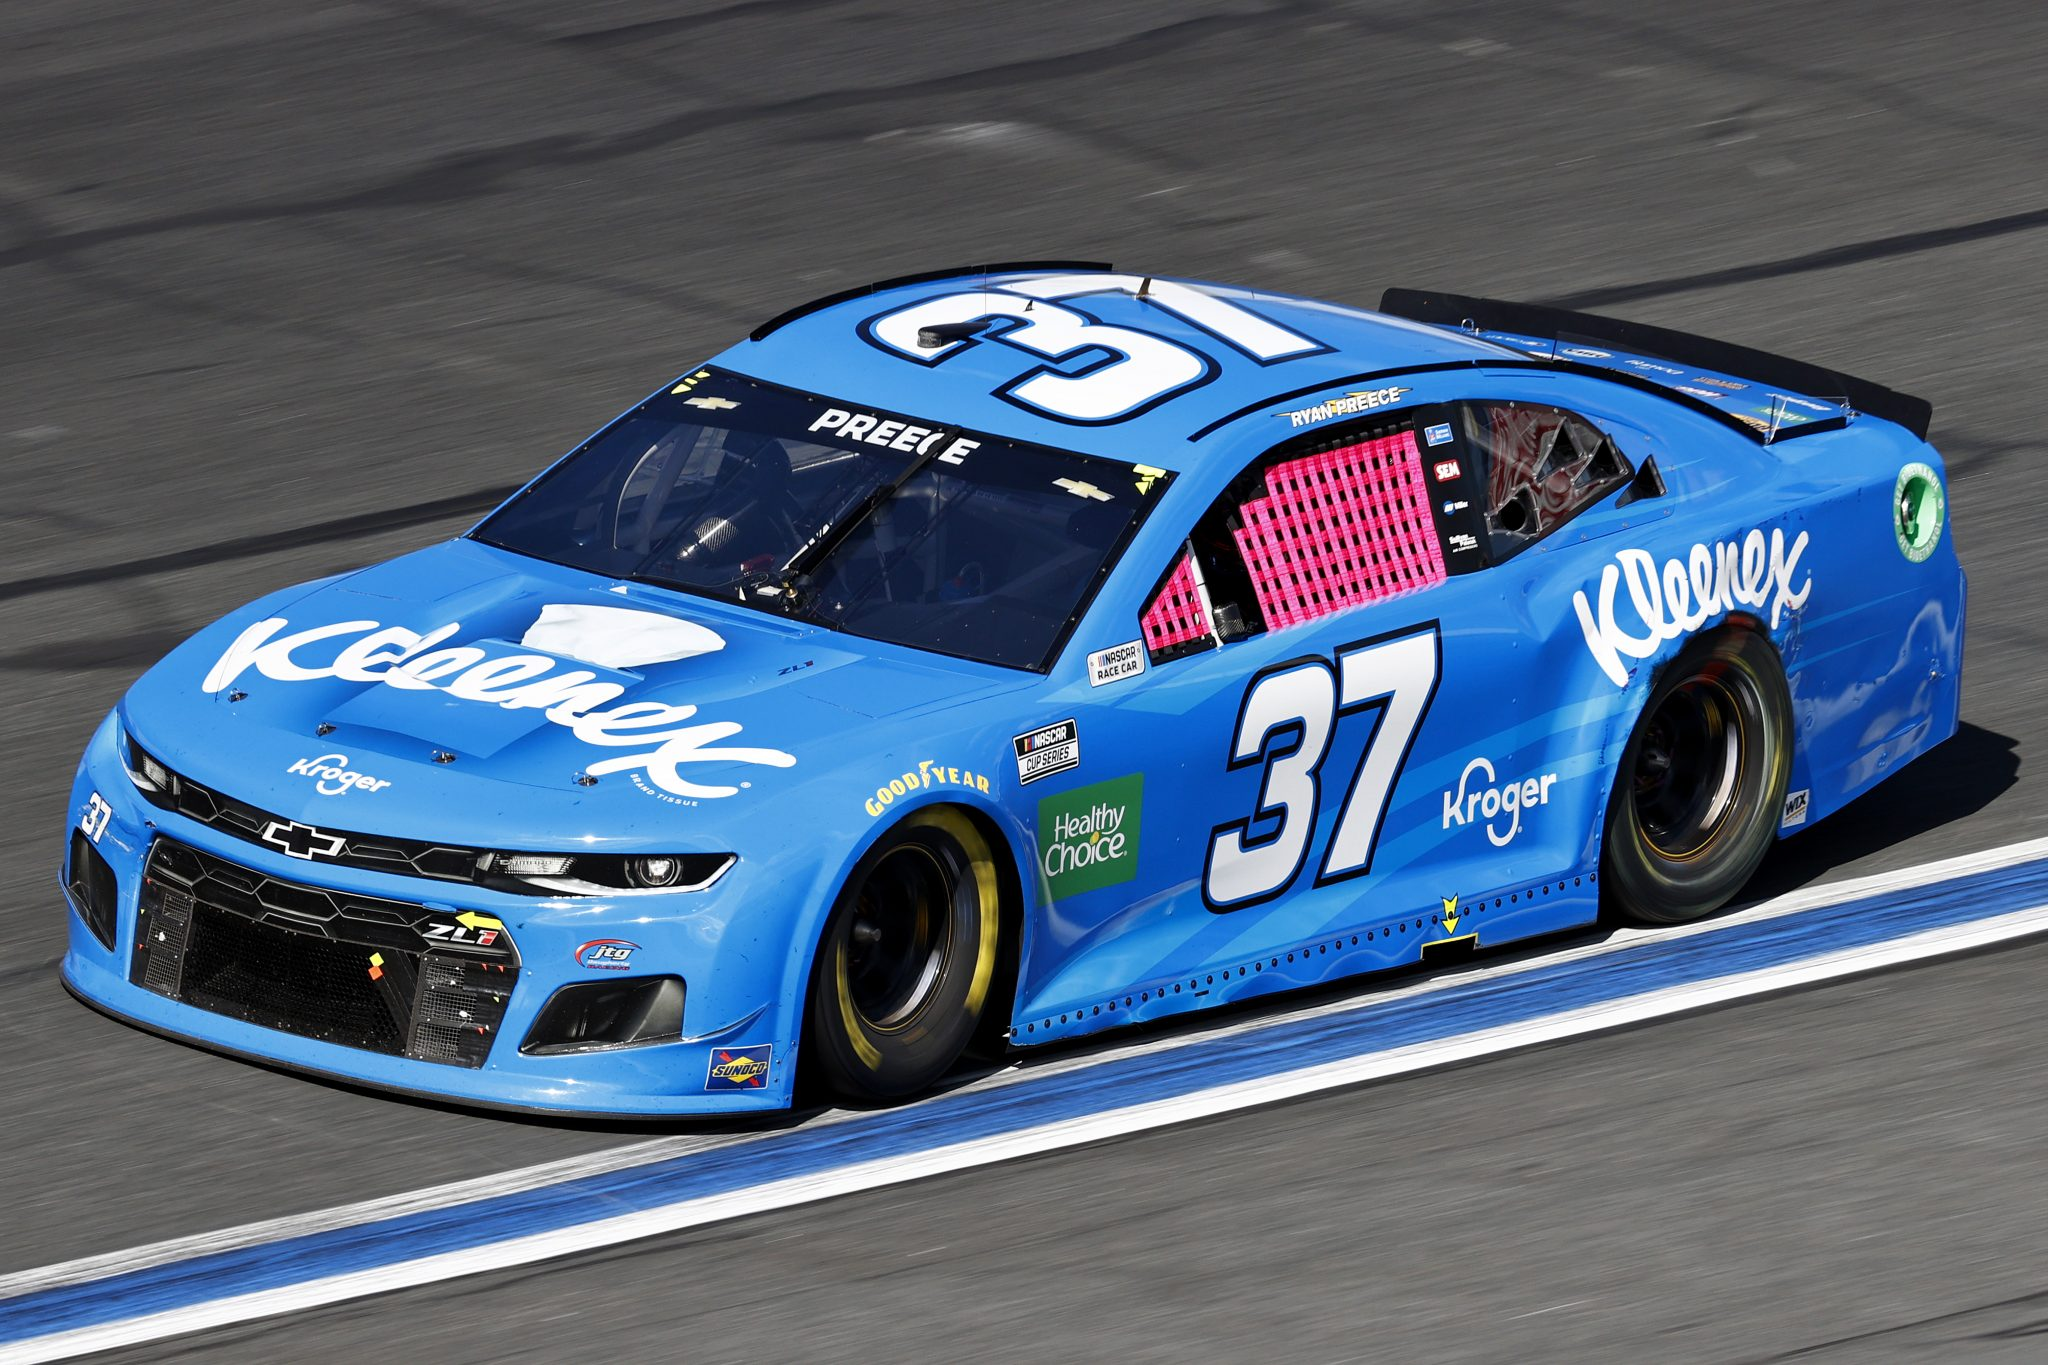 CONCORD, NORTH CAROLINA - OCTOBER 10: Ryan Preece, driver of the #37 Kleenex Chevrolet, drives during the NASCAR Cup Series Bank of America ROVAL 400 at Charlotte Motor Speedway on October 10, 2021 in Concord, North Carolina. (Photo by Jared C. Tilton/Getty Images) | Getty Images